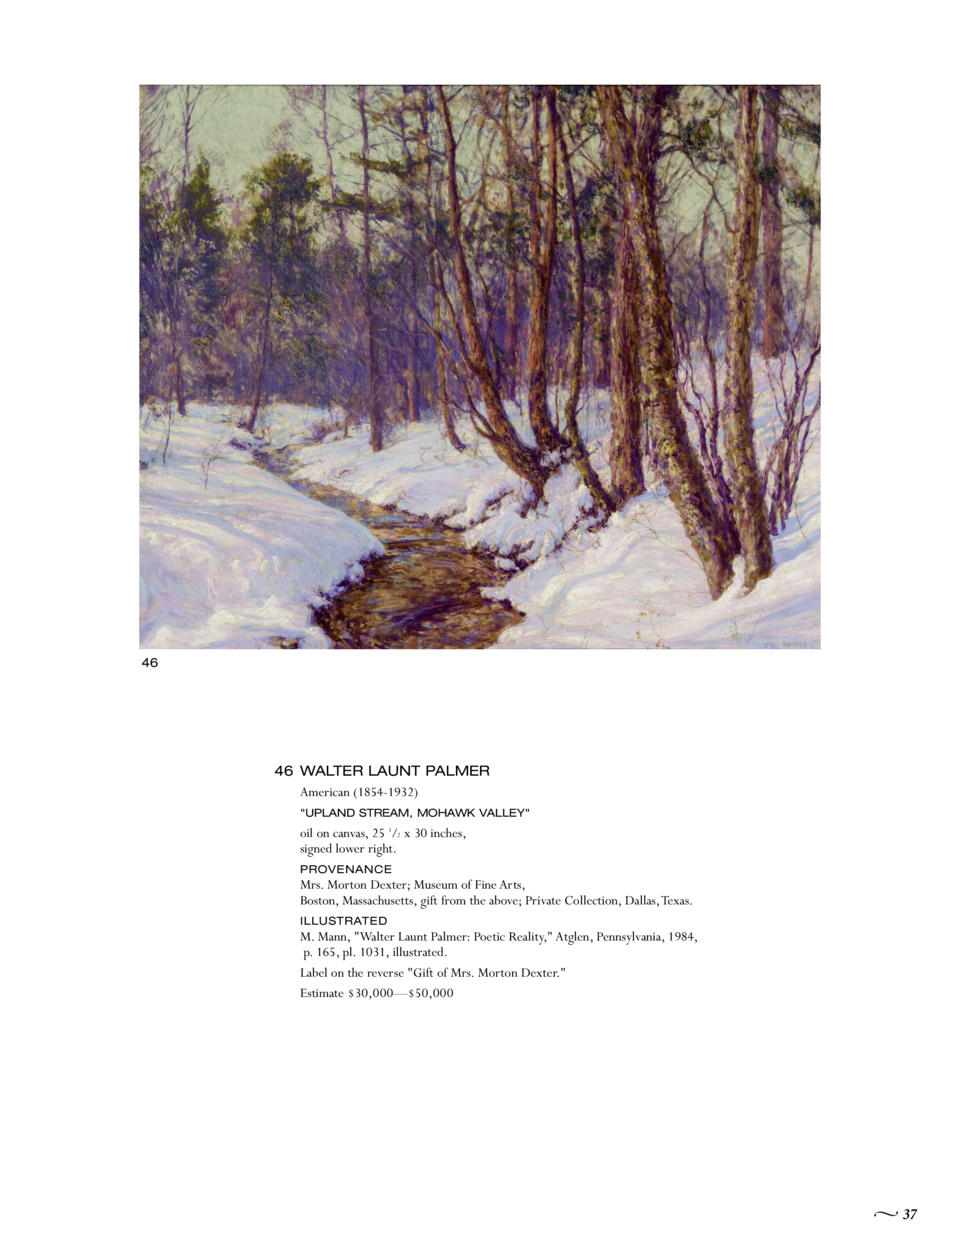 46  46 WALTER LAUNT PALMER American  1854-1932   UPLAND STREAM, MOHAWK VALLEY   oil on canvas, 25 1 2 x 30 inches, signed ...